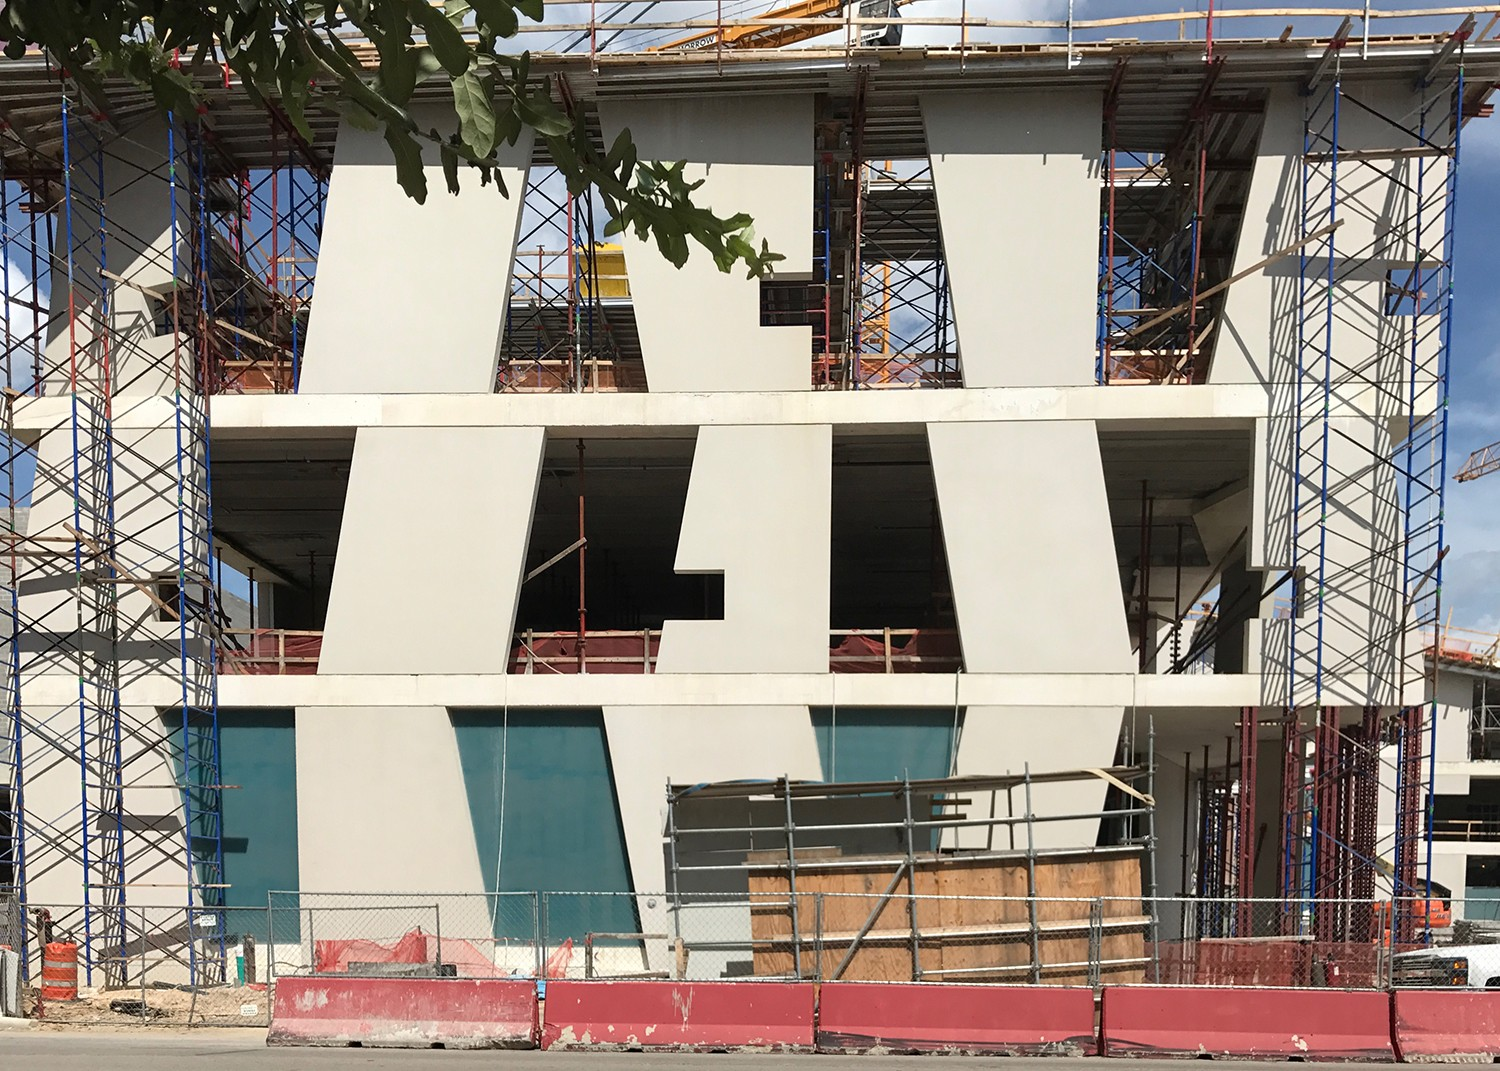 https://s3.us-east-2.amazonaws.com/steven-holl/uploads/projects/project-images/StevenHollArchitects_MFAH_SHA_construction2_WV.jpg